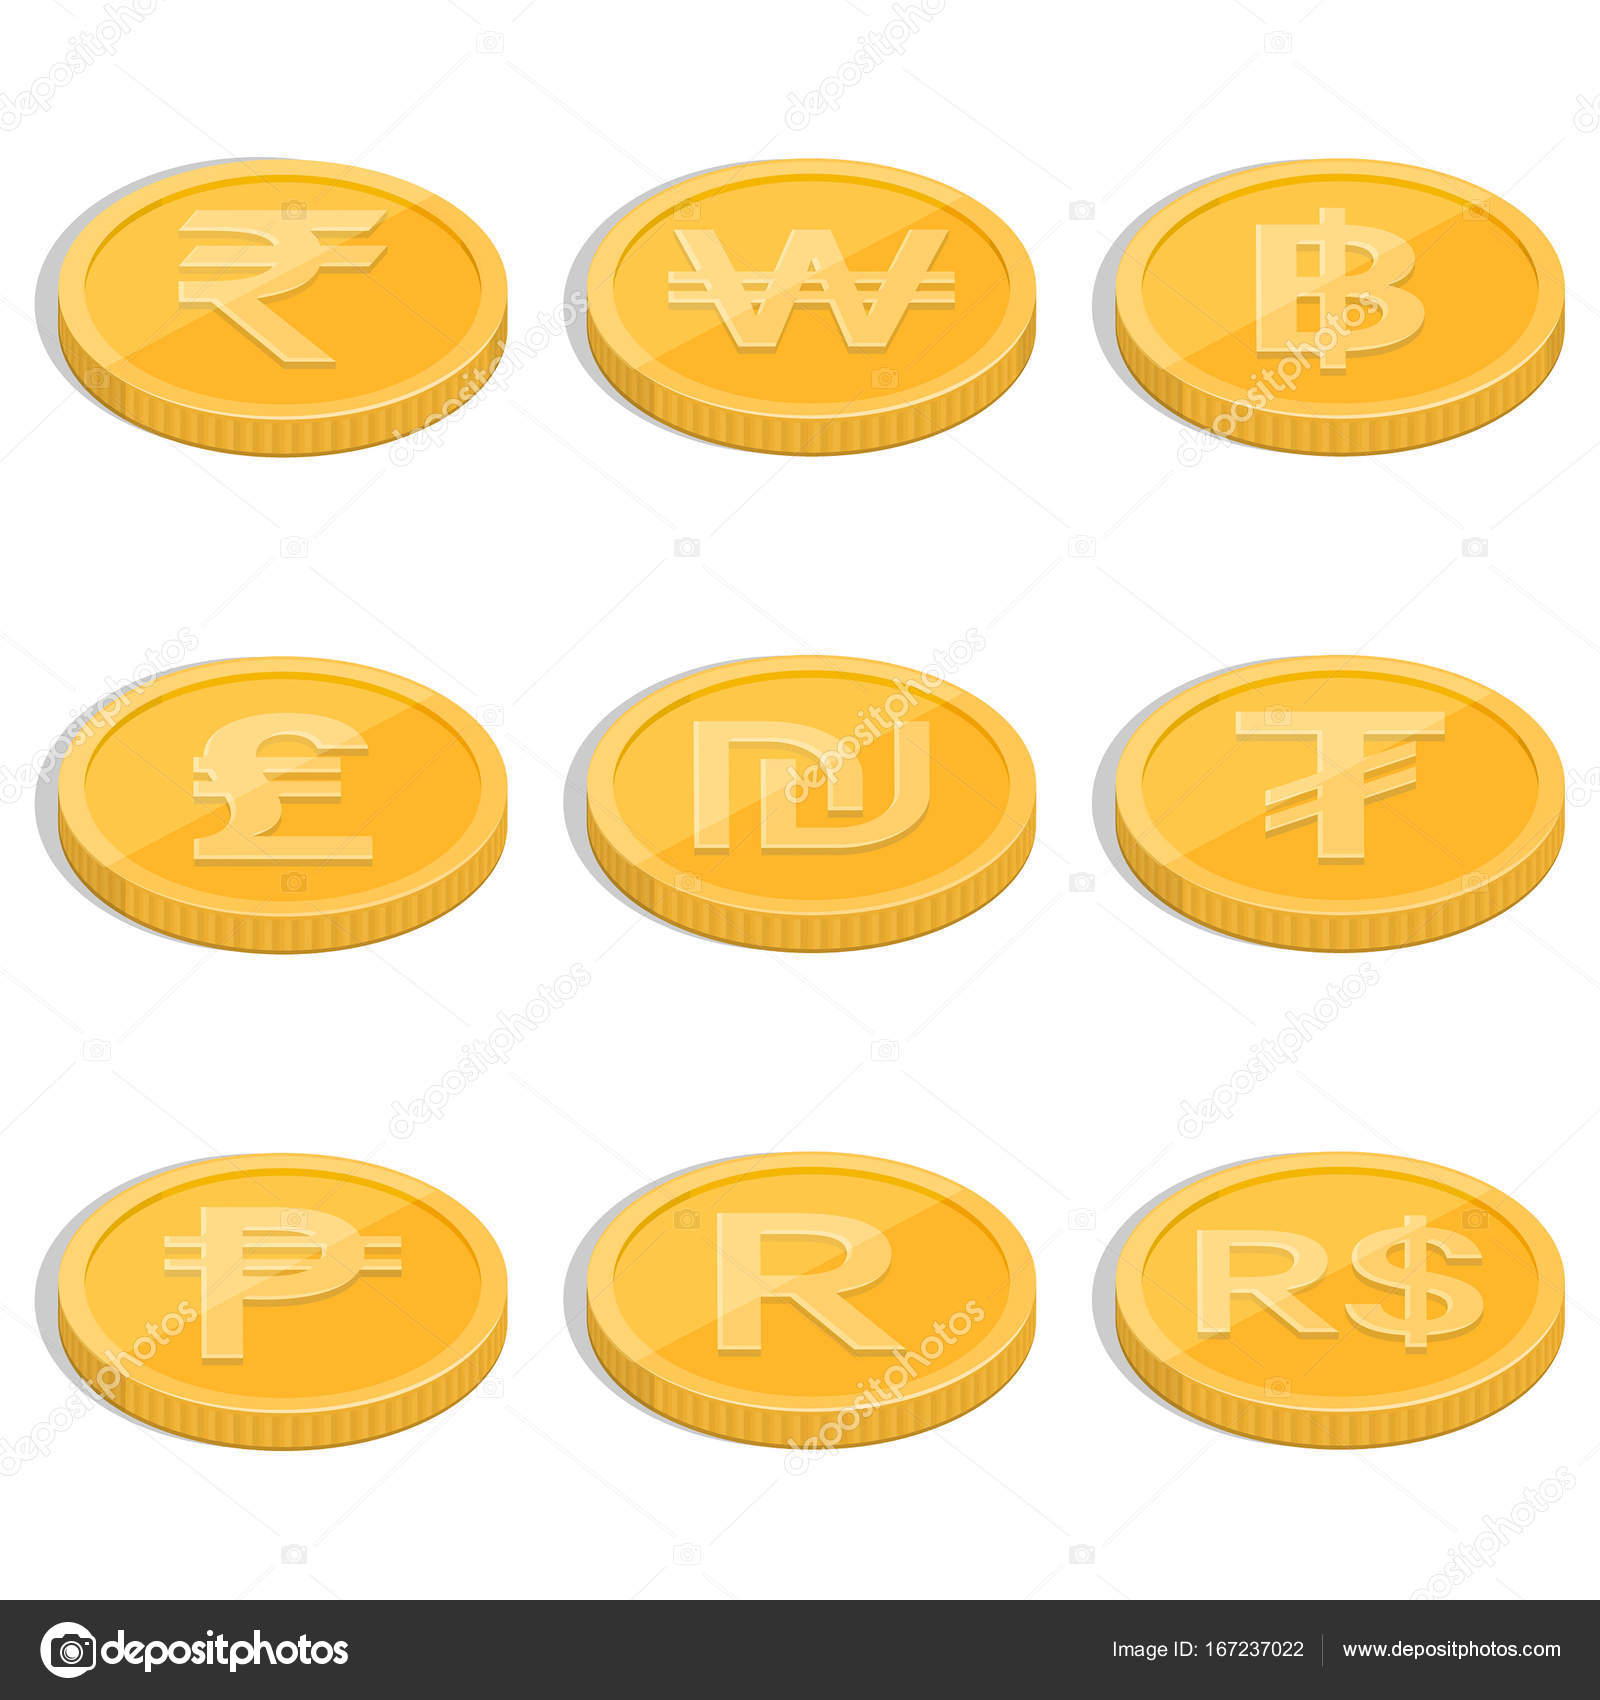 A set of coins stock vector baretsky 167237022 a set of coins of symbols of currencies of the countries of the world on the isolated white backgroundgns rupee baht lira shekel dollar tugrik buycottarizona